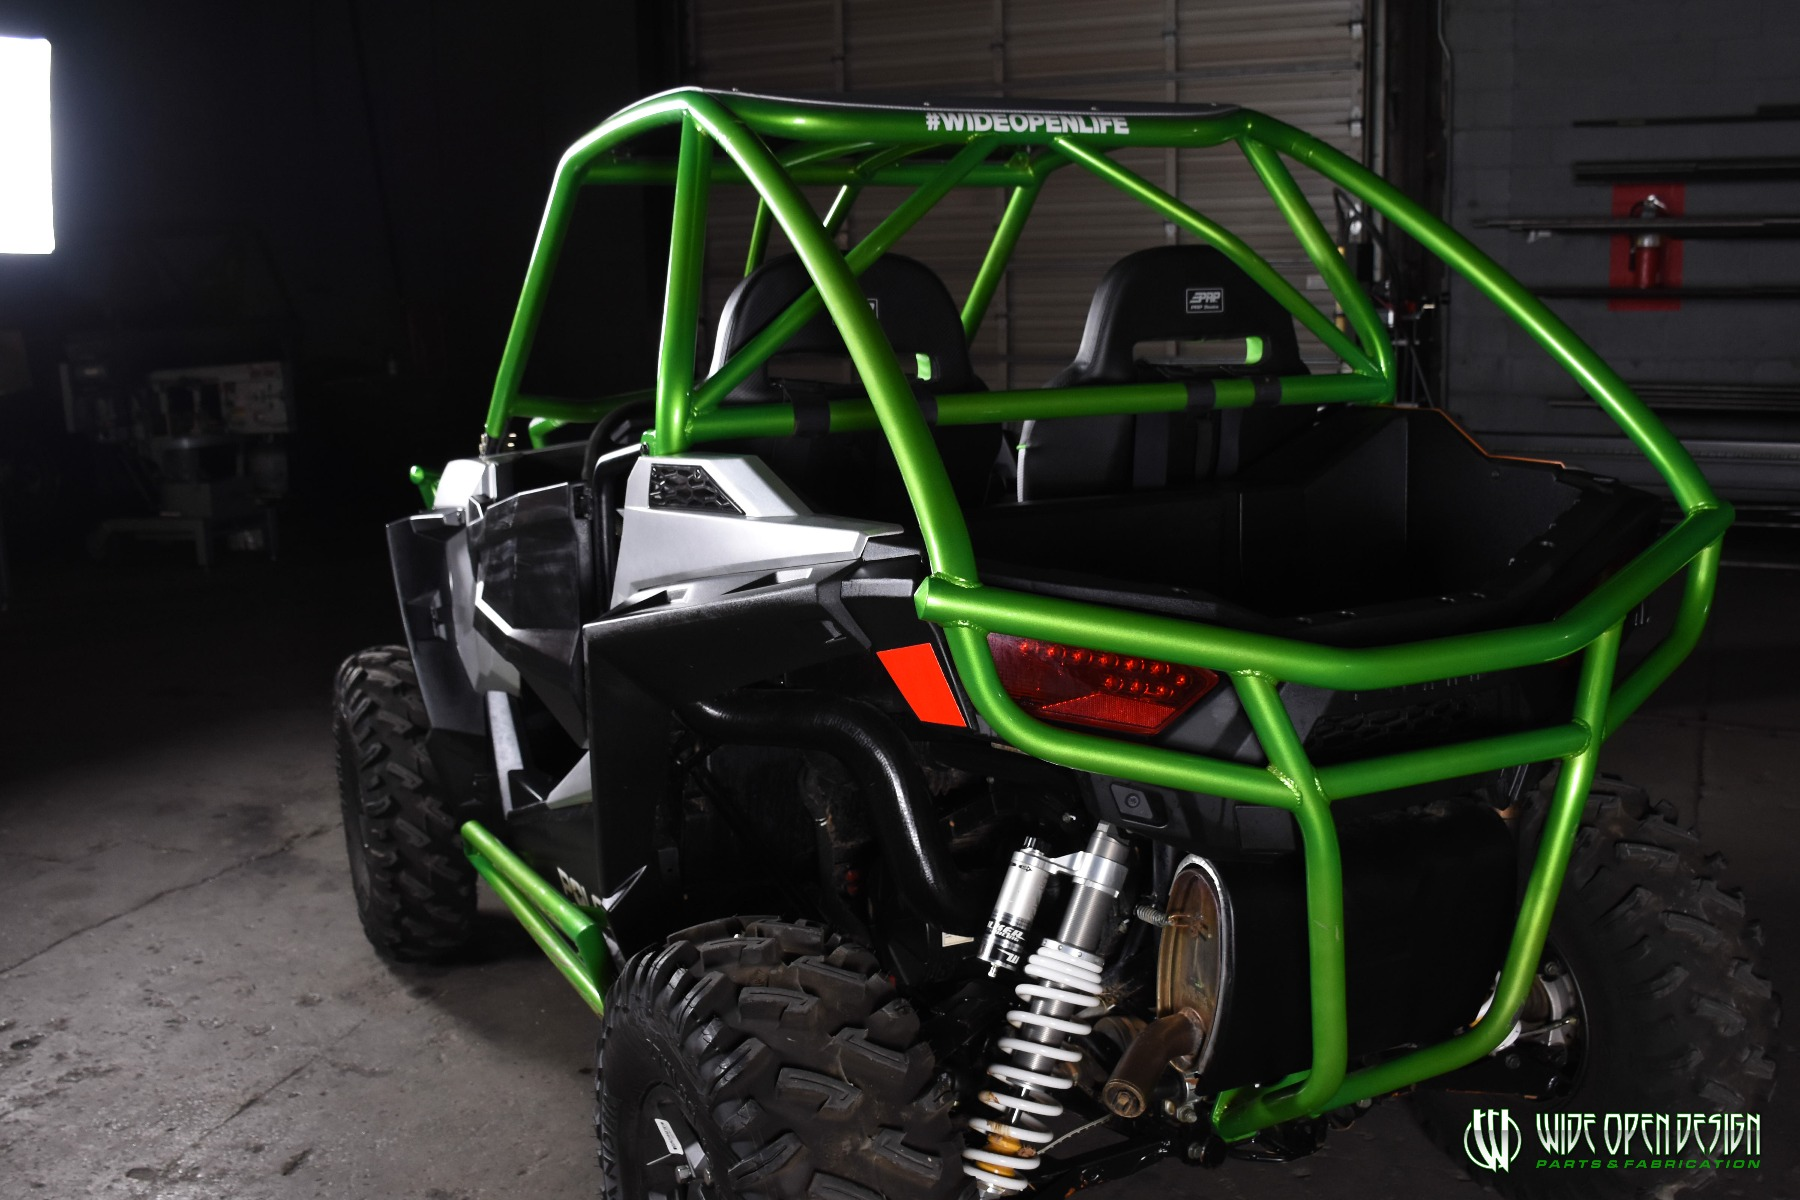 Jason's 1000s RZR with Wide Open Design Rolled Roof Cage, Front Bumper with Tie In, and Rocker Guards 27